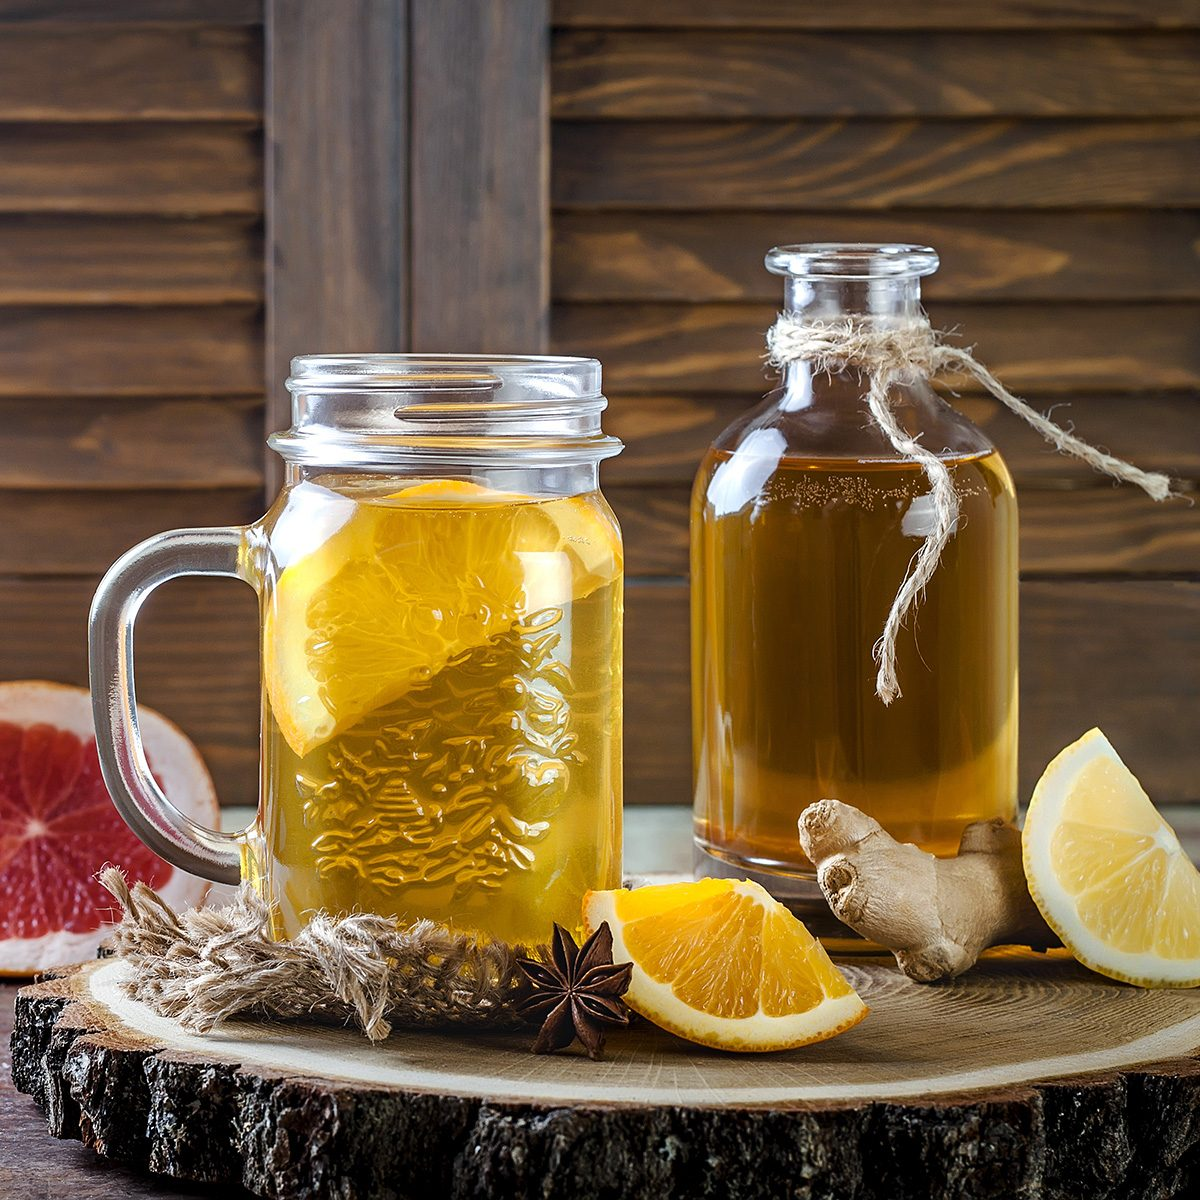 Homemade fermented raw kombucha tea with different flavorings.